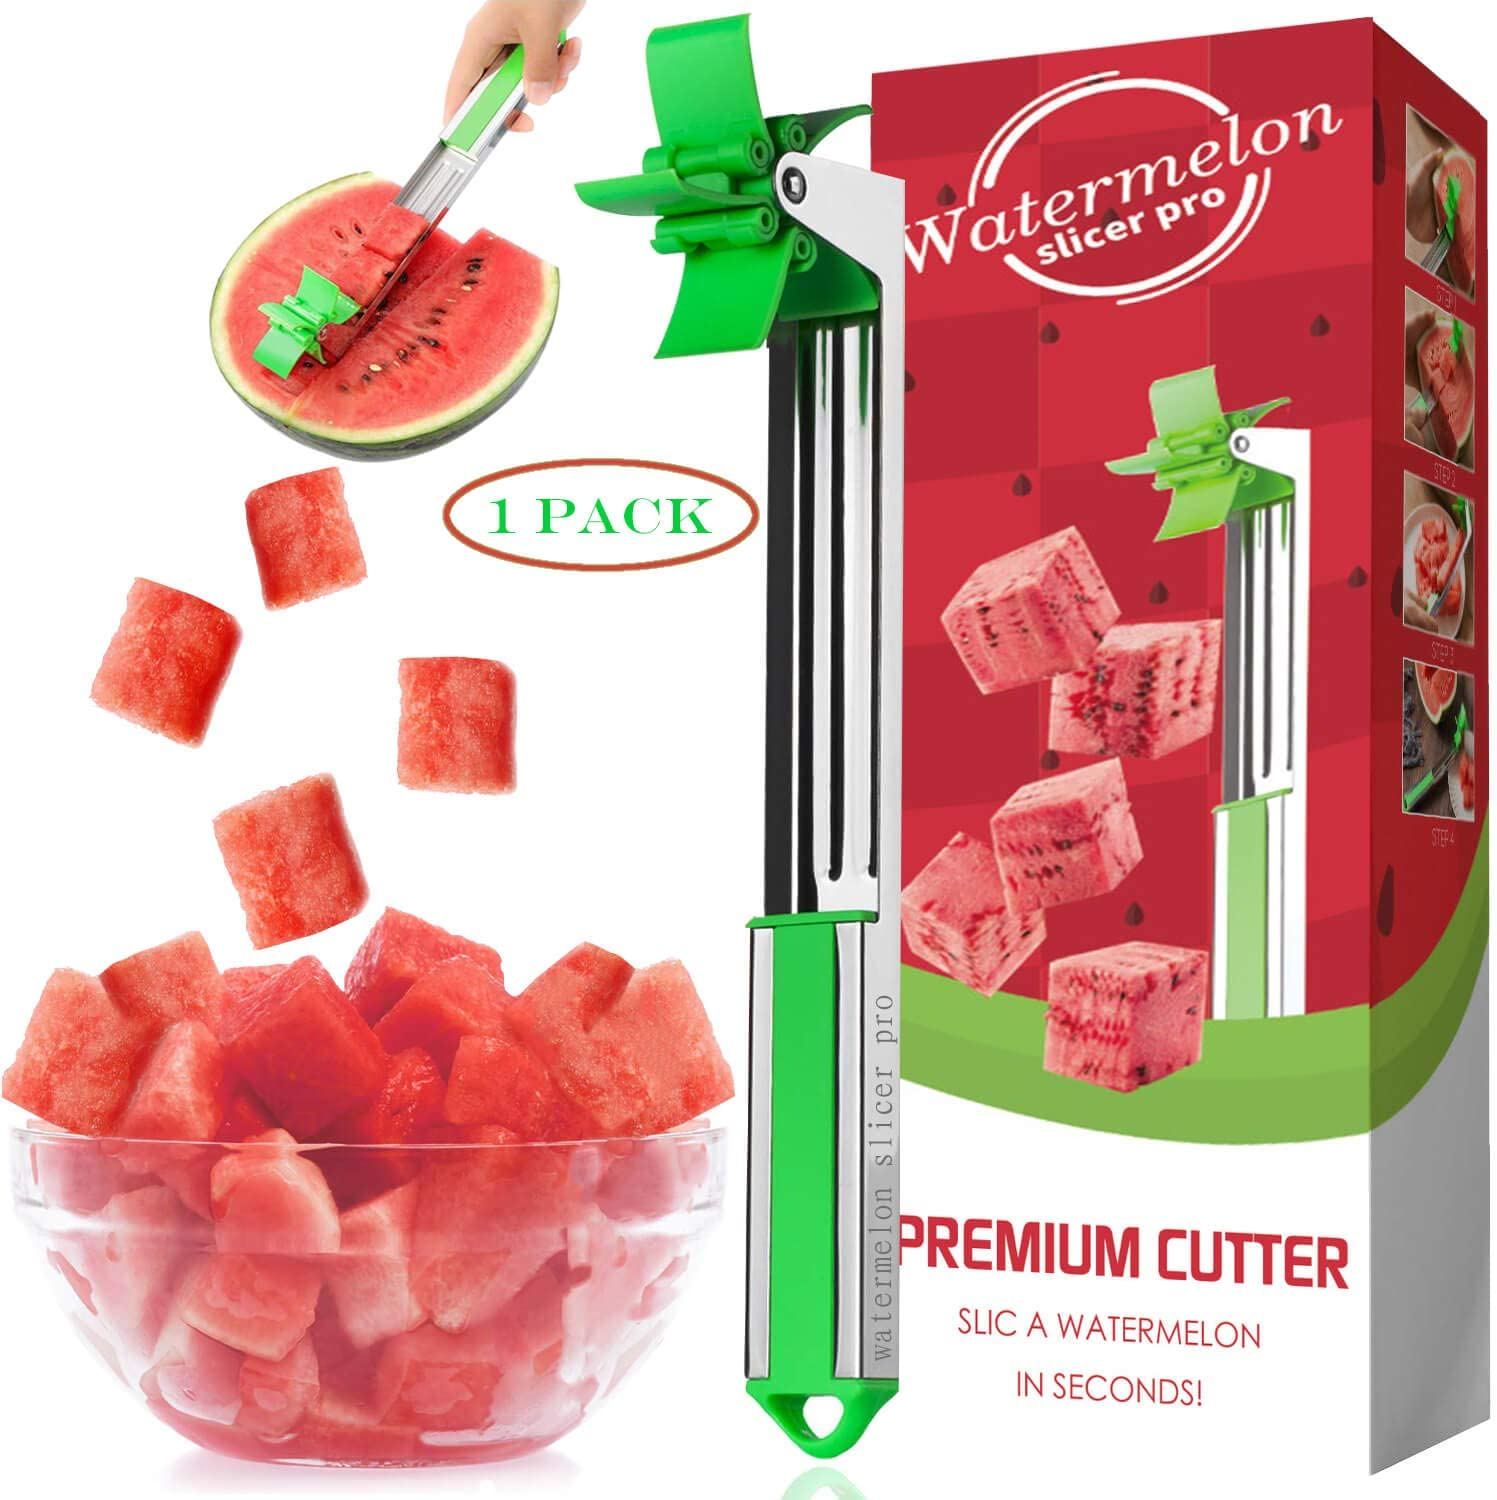 Watermelon Slicer Cutter Stainless Steel Windmill Watermelon Cutter Knife - Kids Fascinated Melon Cuber Cutting Tool - Carving and Cutting Utility Knife for Home Fruit Party - Cool Kitchen Gadgets